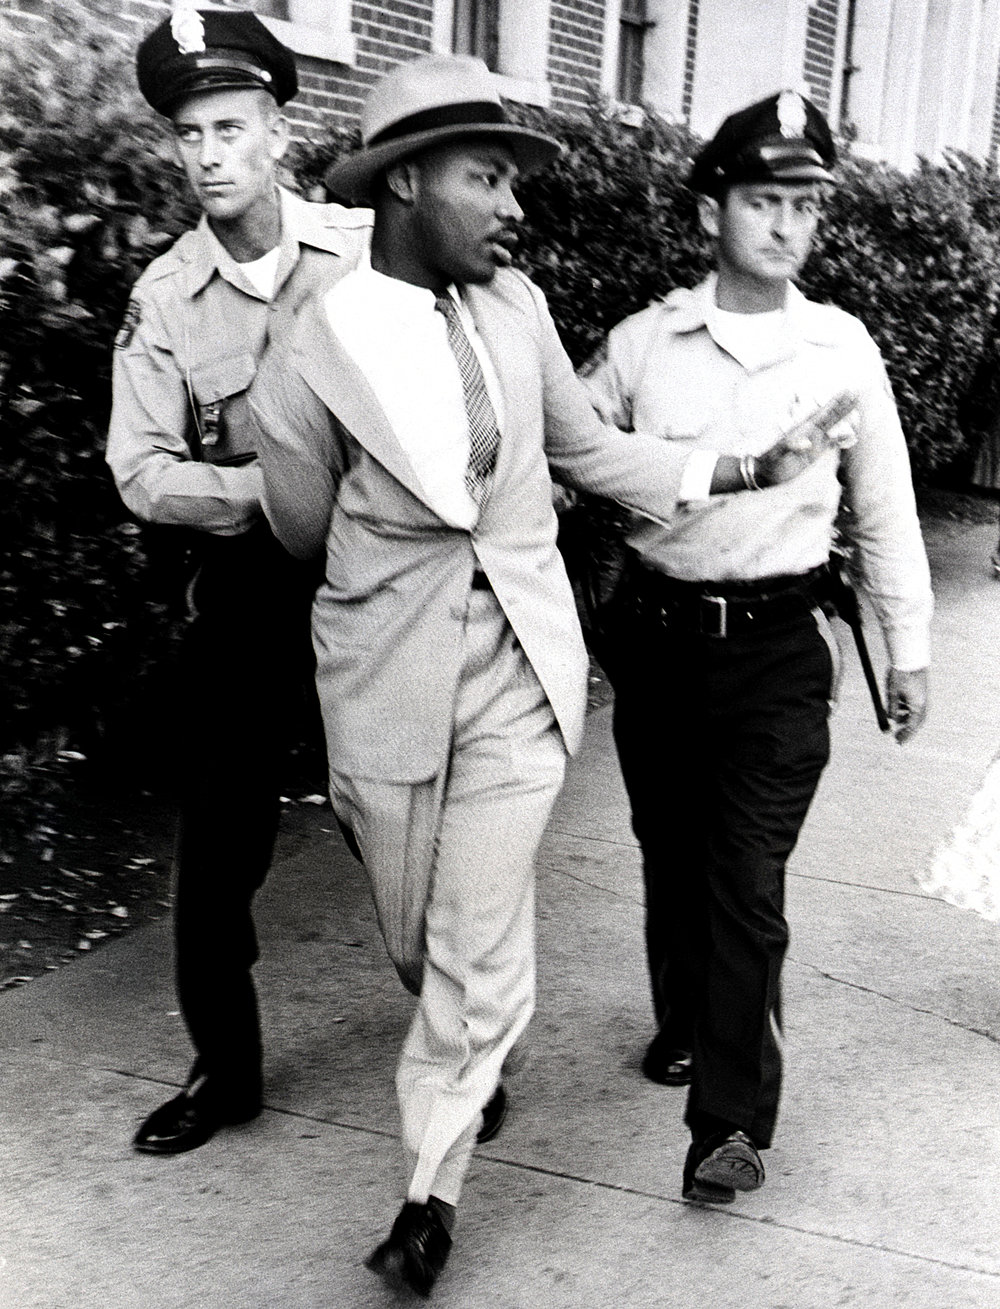 1956 | January 26th - Dr. King is arrested on a charge of travelling thirty miles per hour in a twenty-five miles per hour zone in Montgomery. He is later released.